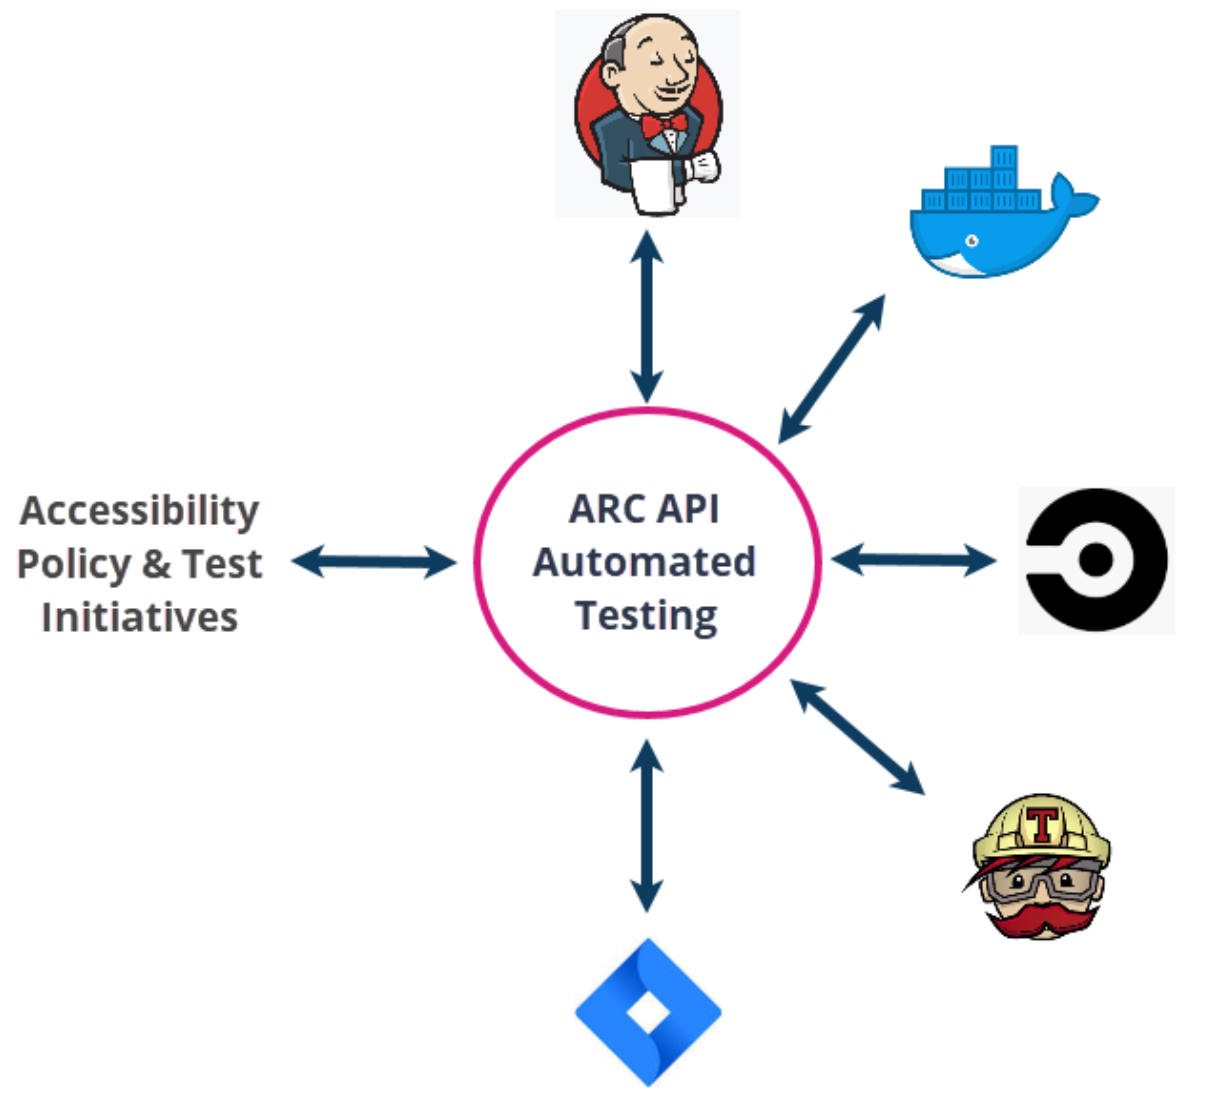 API Integrations chart. ARC API allows you to integrate accessibility into your CICD platform.